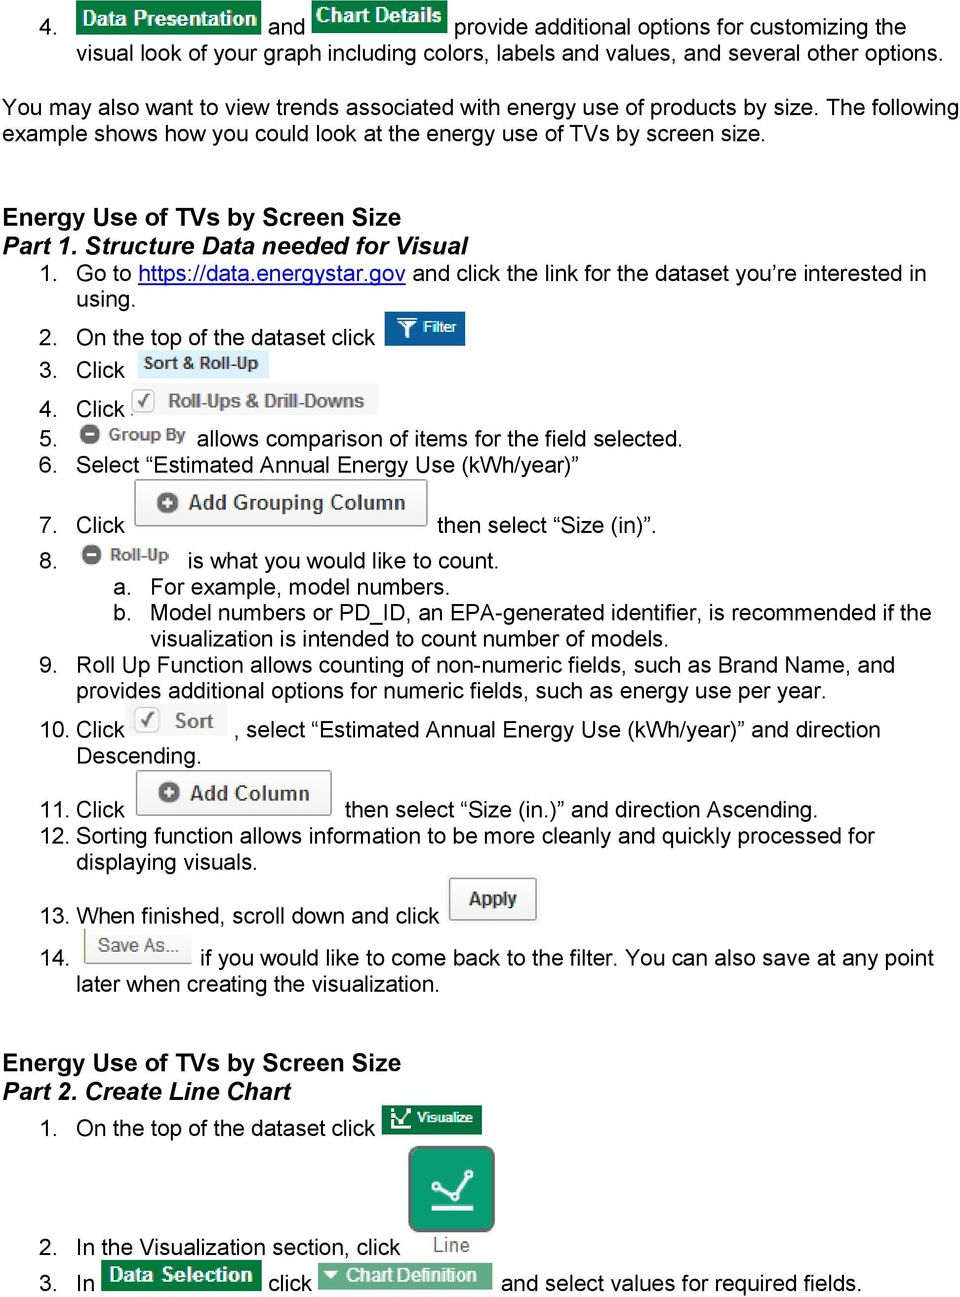 Energy Use of TVs by Screen Size Part 1. Structure Data needed for Visual 1. Go to https://data.energystar.gov and click the link for the dataset you re interested in using. 2.